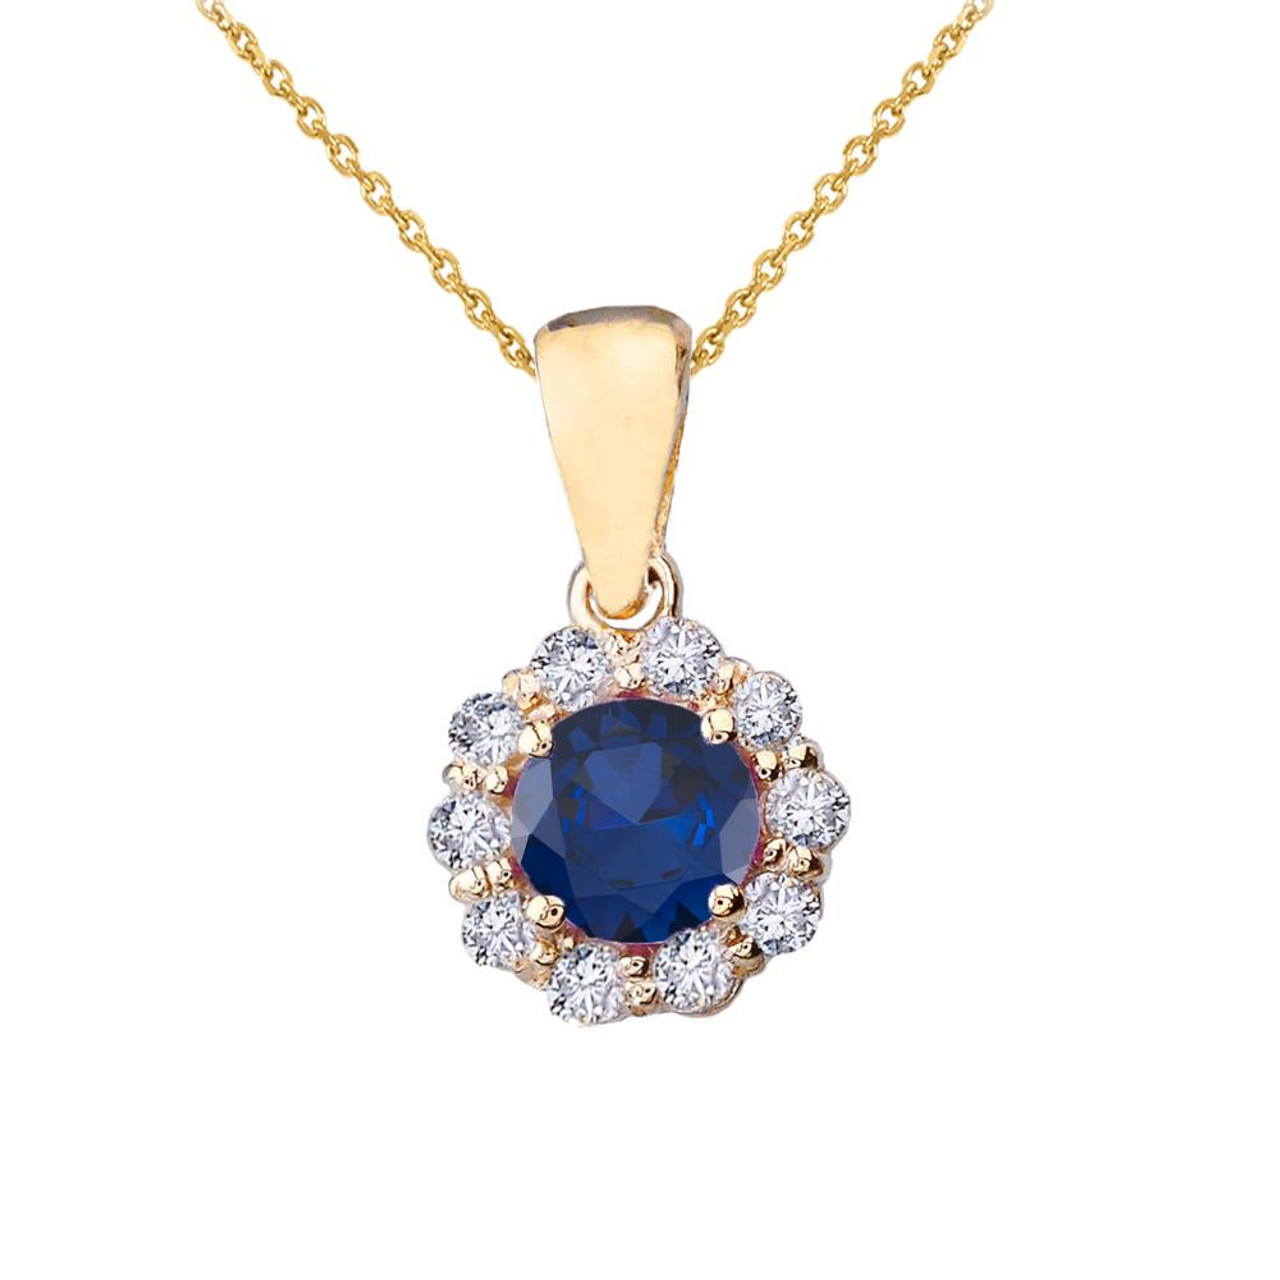 14k yellow gold dainty floral diamond center stone sapphire pendant 14k yellow gold dainty floral diamond center stone sapphire pendant necklace aloadofball Image collections